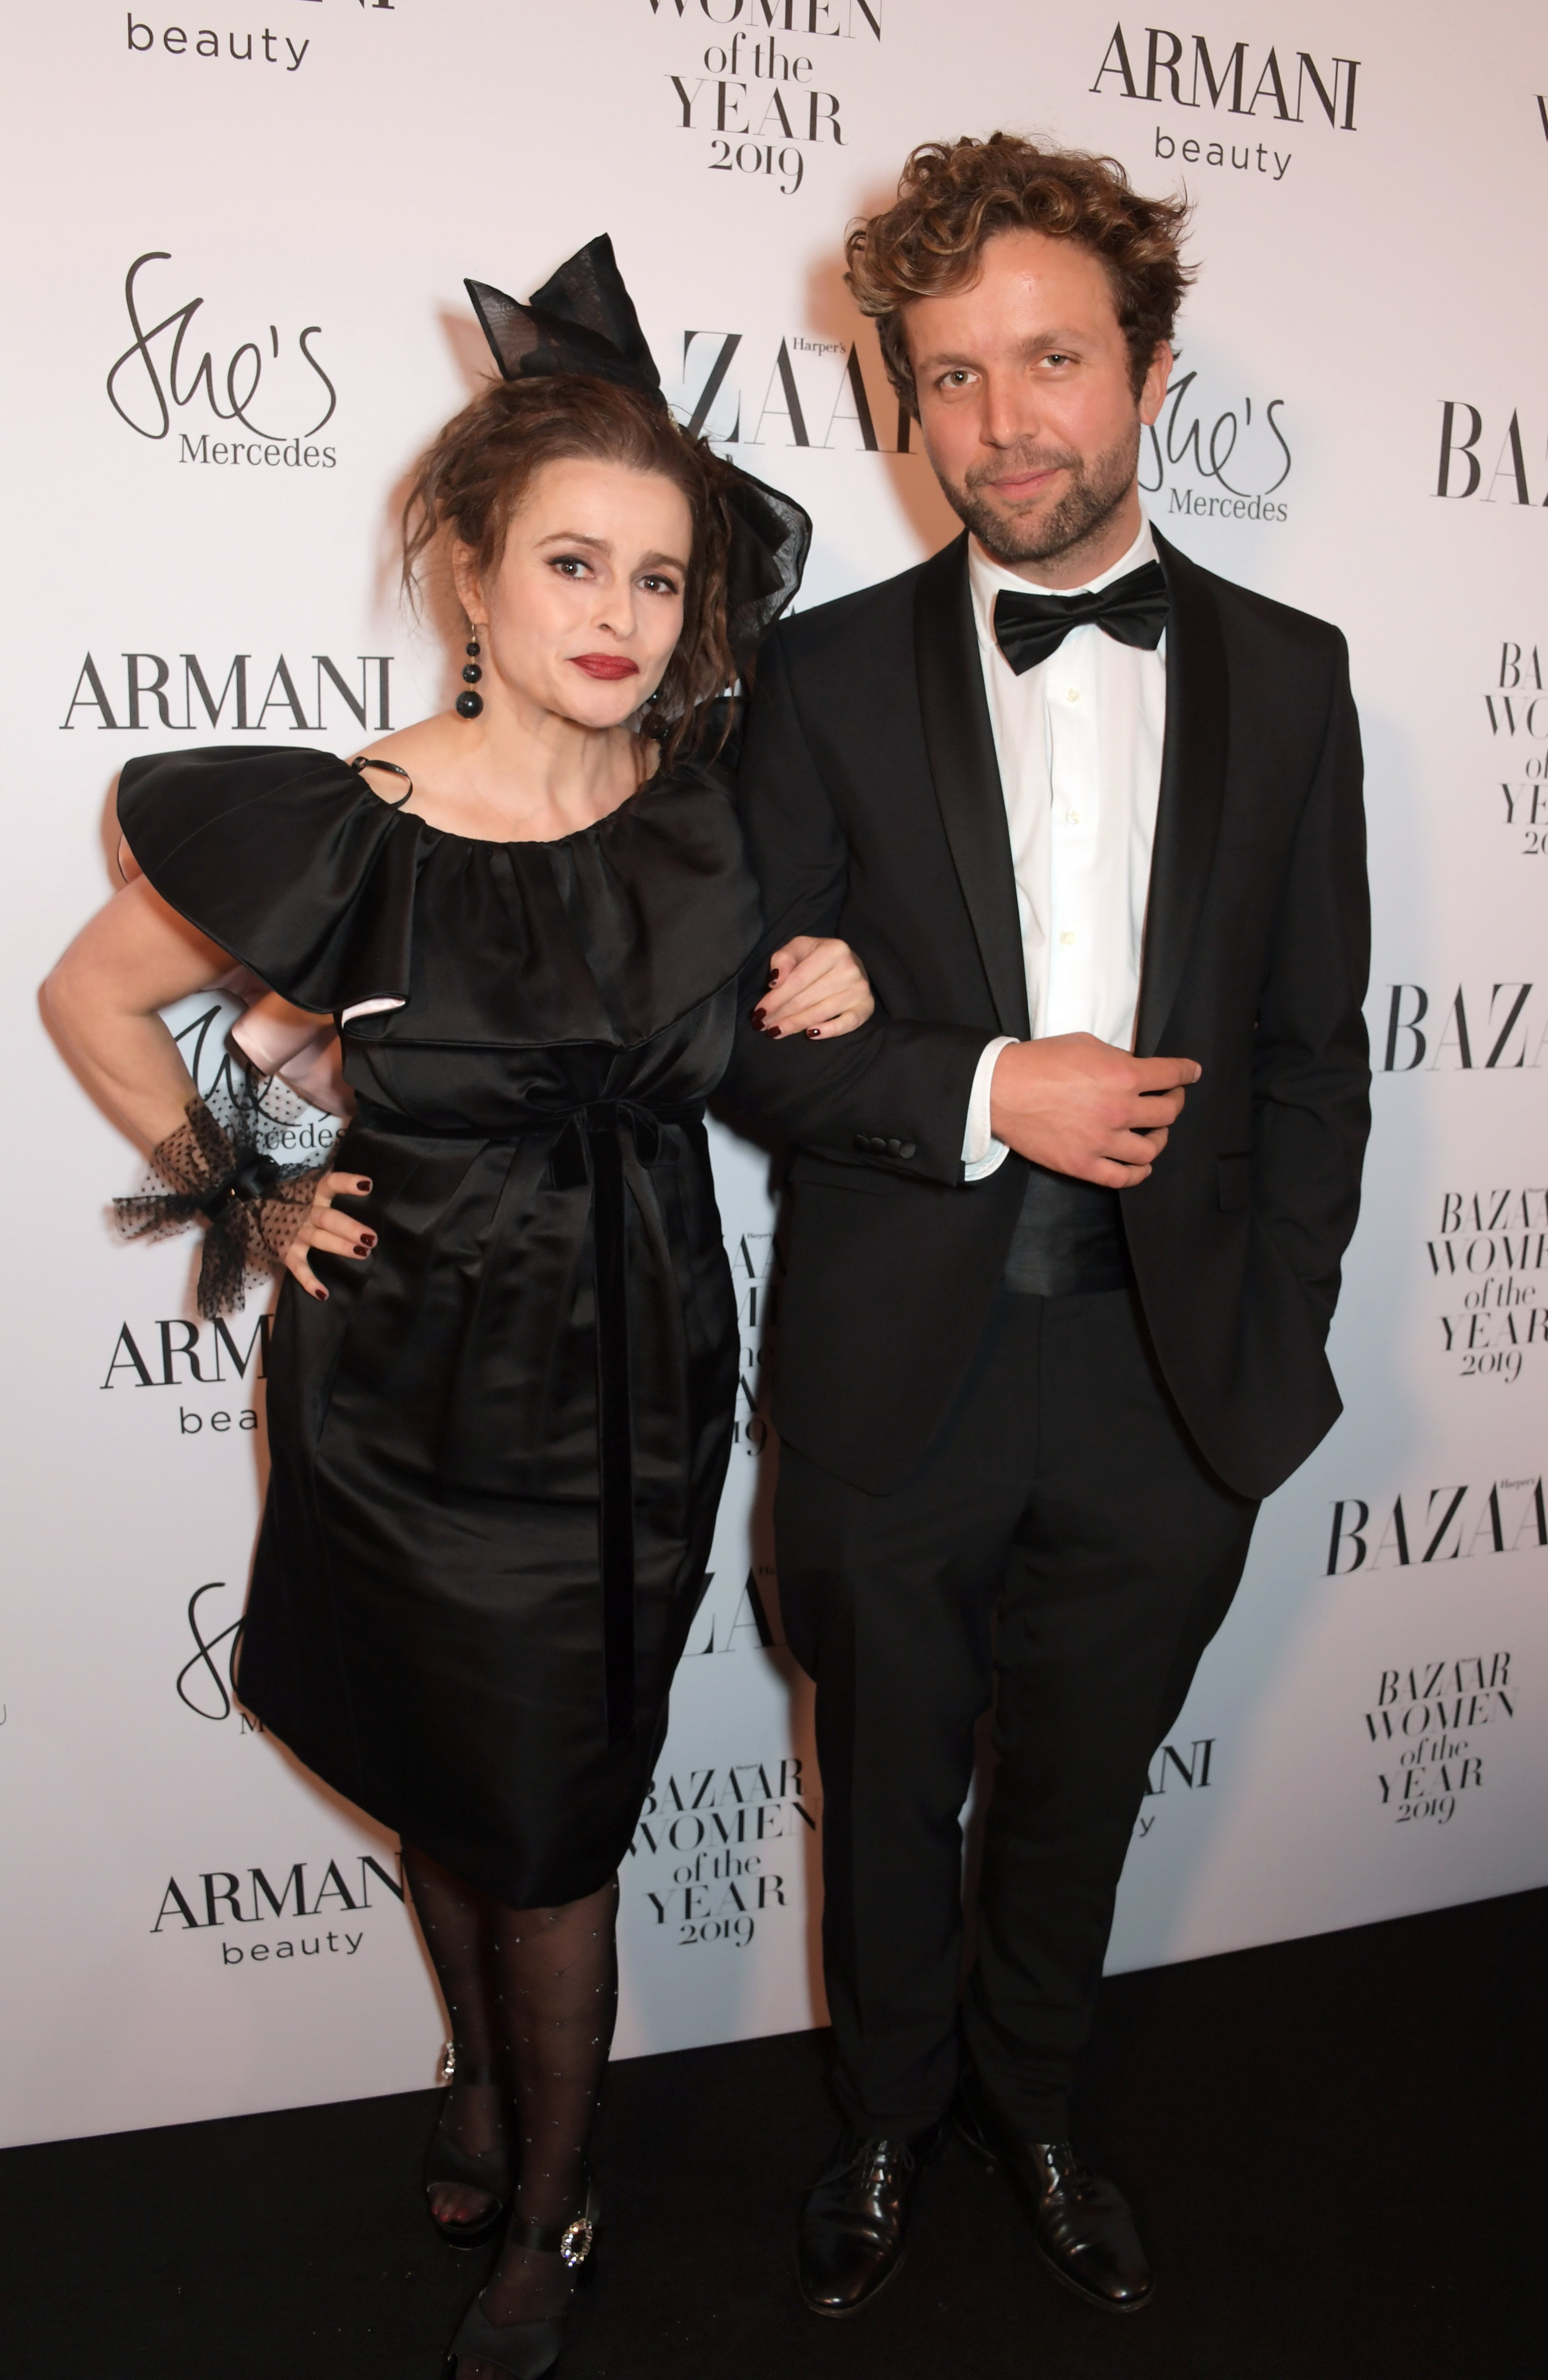 Helena Bonham Carter and Rye Dag Holmboe attend Harper's Bazaar Women of the Year Awards in London, England on October 29, 2019 | Photo: Getty Images